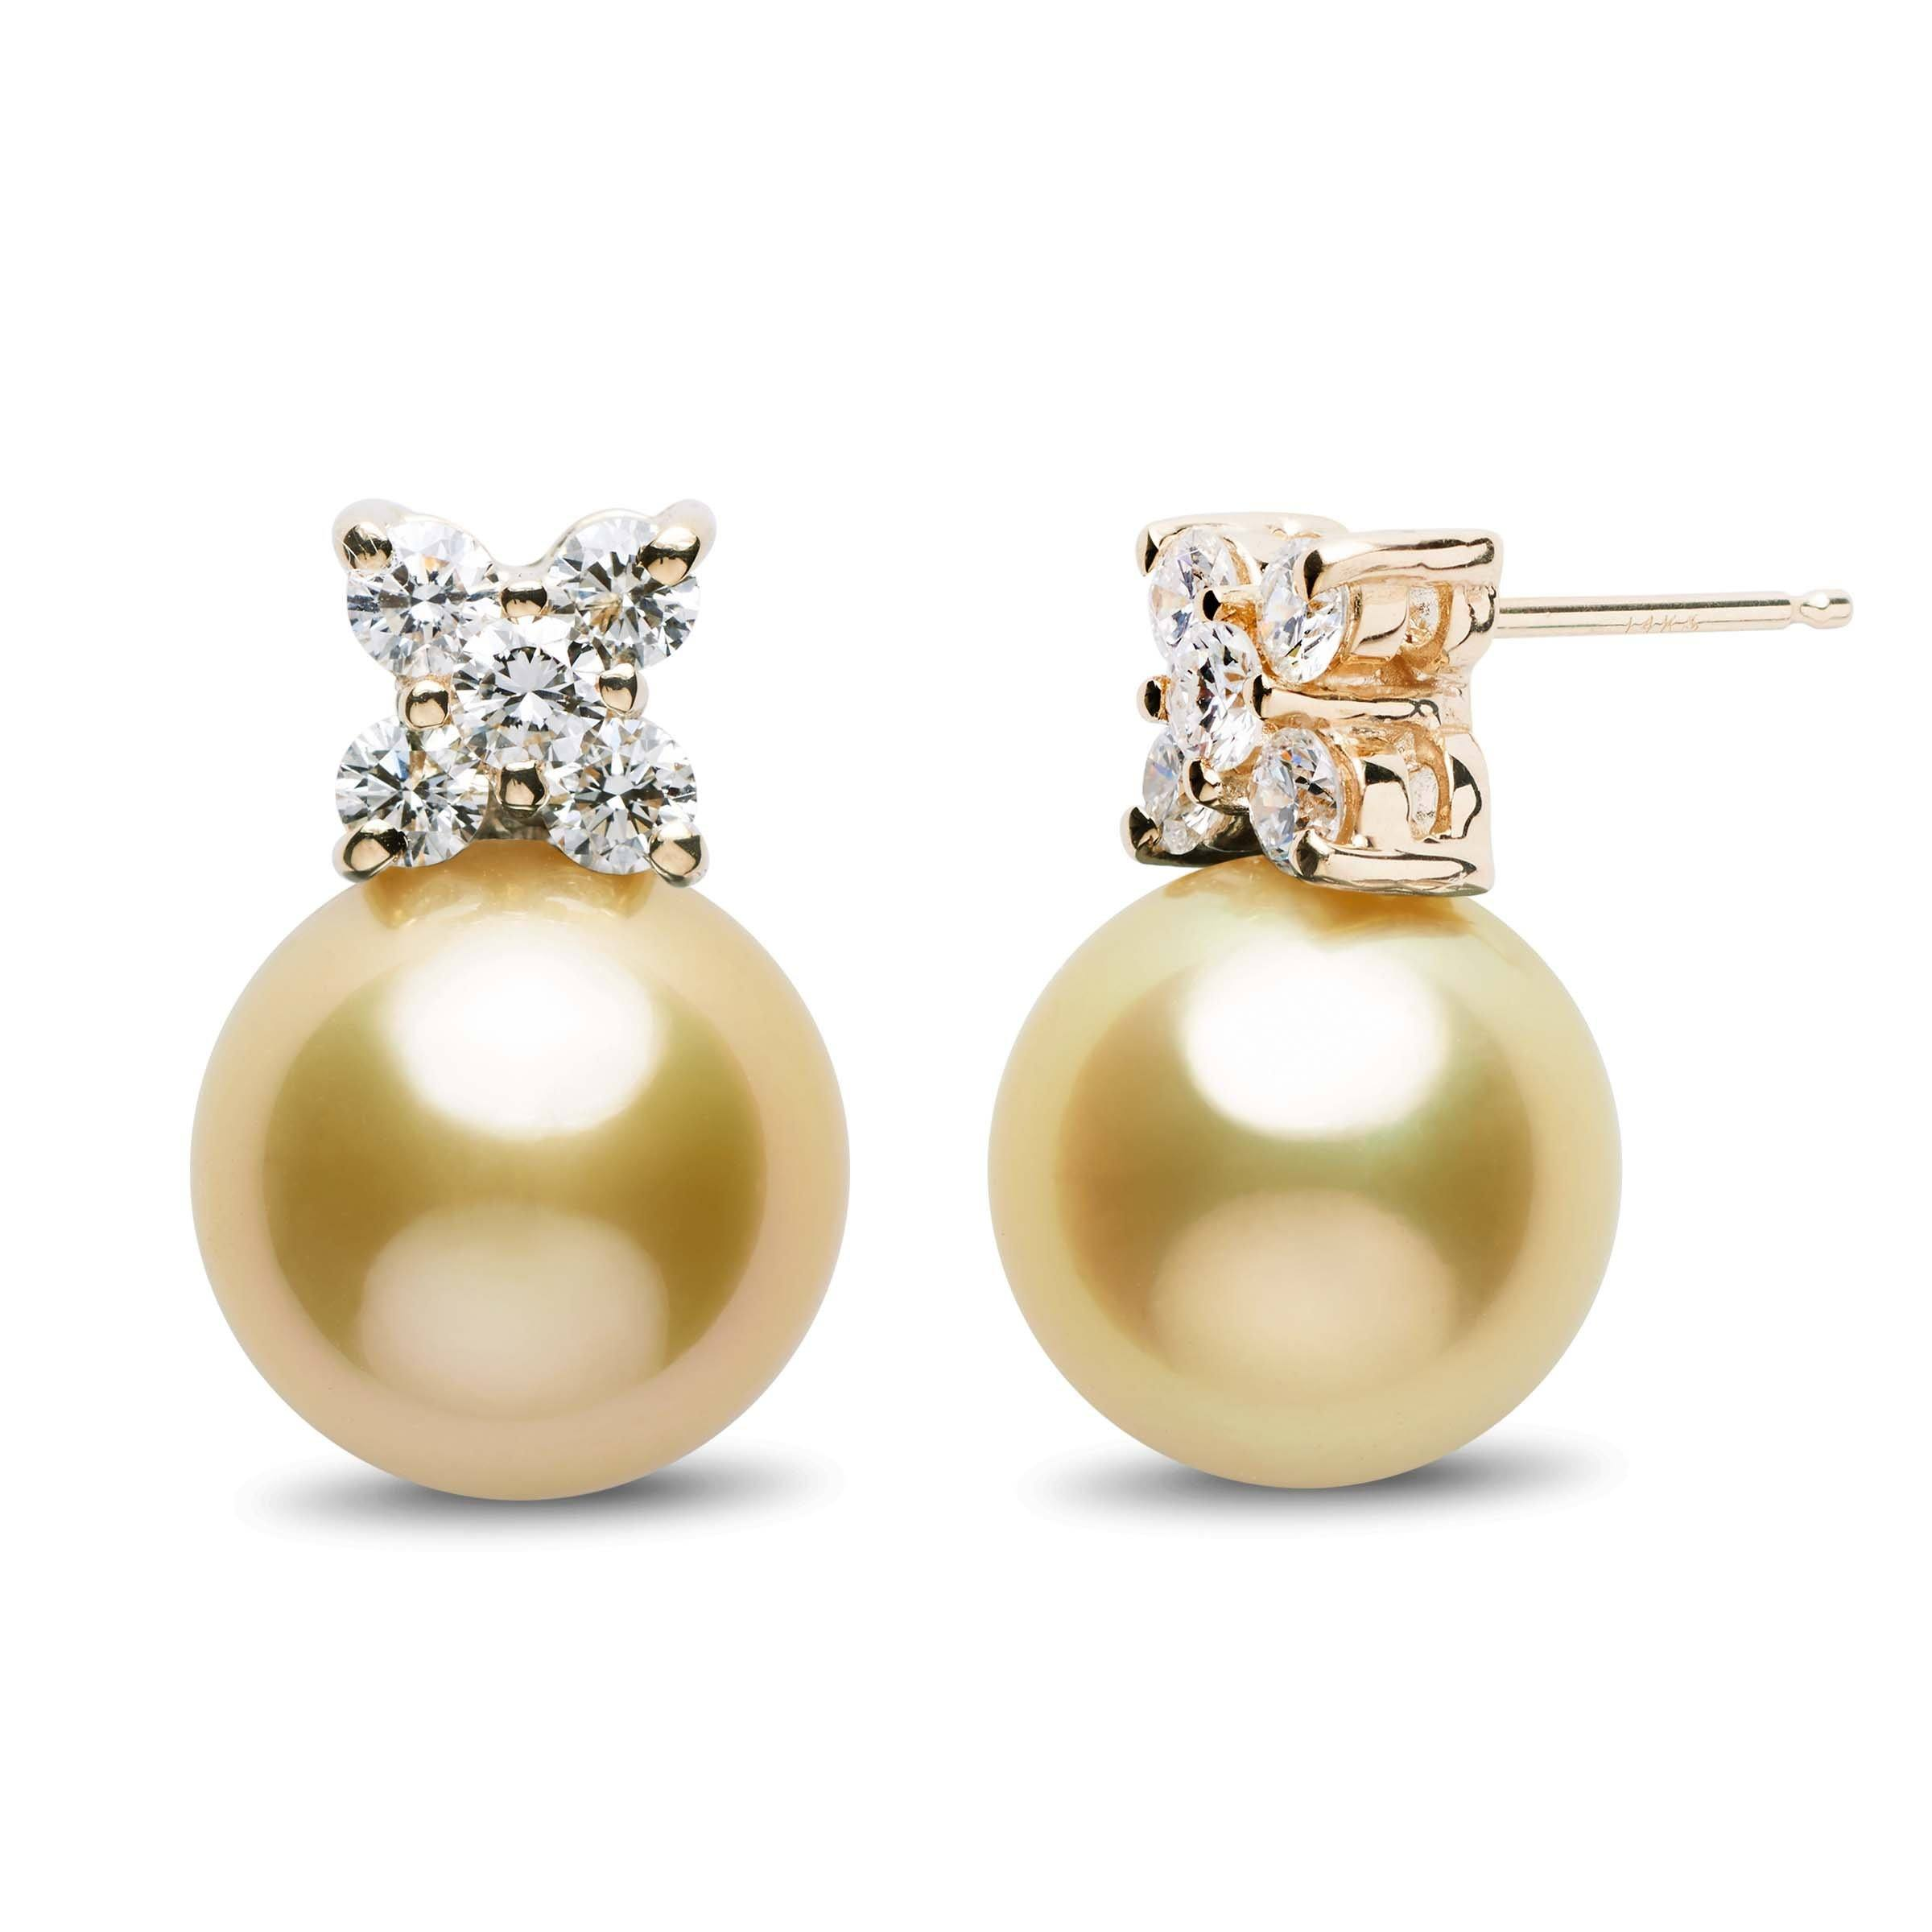 Kiss Collection Golden South Sea 11.0-12.0 mm Pearl and Diamond Stud Earrings